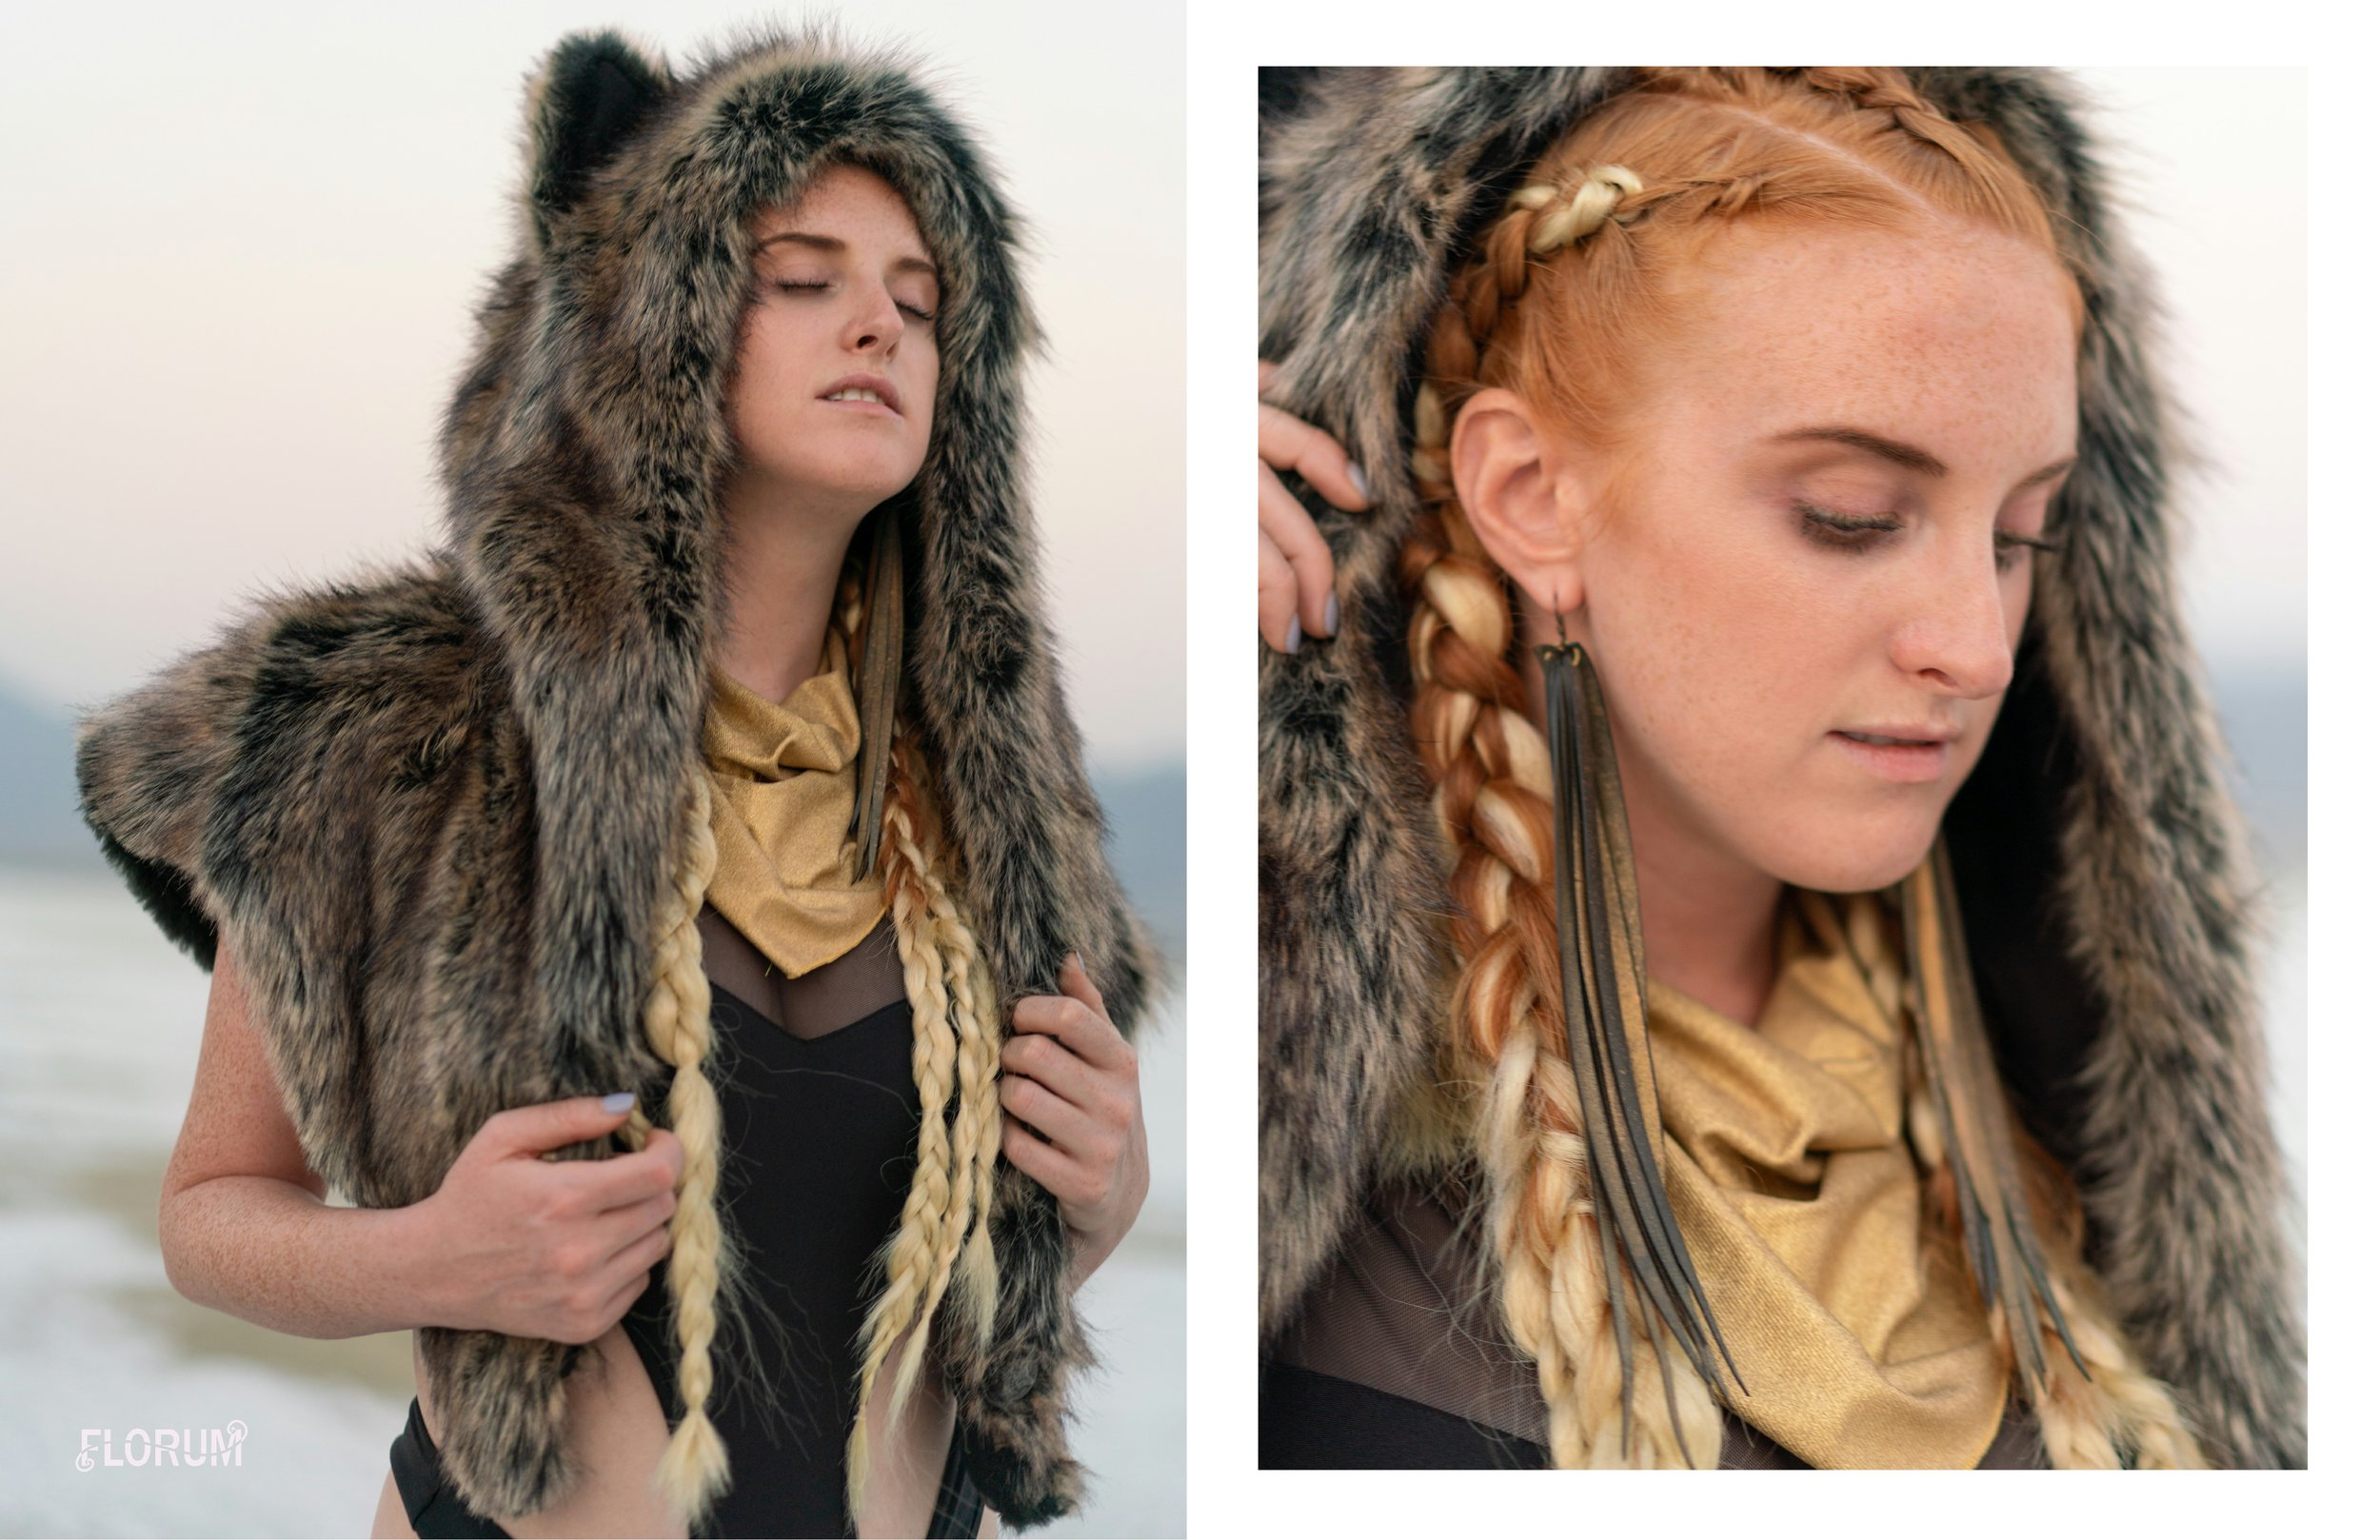 One of my favorite festival brands that I have bought and worn over the years is Spirithoods. Not only do they help bring out your inner animal, however the brand donates back 10% of its net profits to the conservation of endangered animals. Their hoods are all handmade in Los Angeles with faux fur and are designed to last a lifetime. Recently I have loved the new styles and designs that Spirithoods has created to bring out the inner animal in all of us.     ethically made in los angeles  direwolf shawl spirithood     SPIRITHOOD   $149   shop here      repurposed bicycle inner tubes  vegan feather disco earrings  BEATRICE HOLIDAY  $42  shop here       made in usa    black strappy cutout bodysuit     I HEART RAVES  $35  shop here